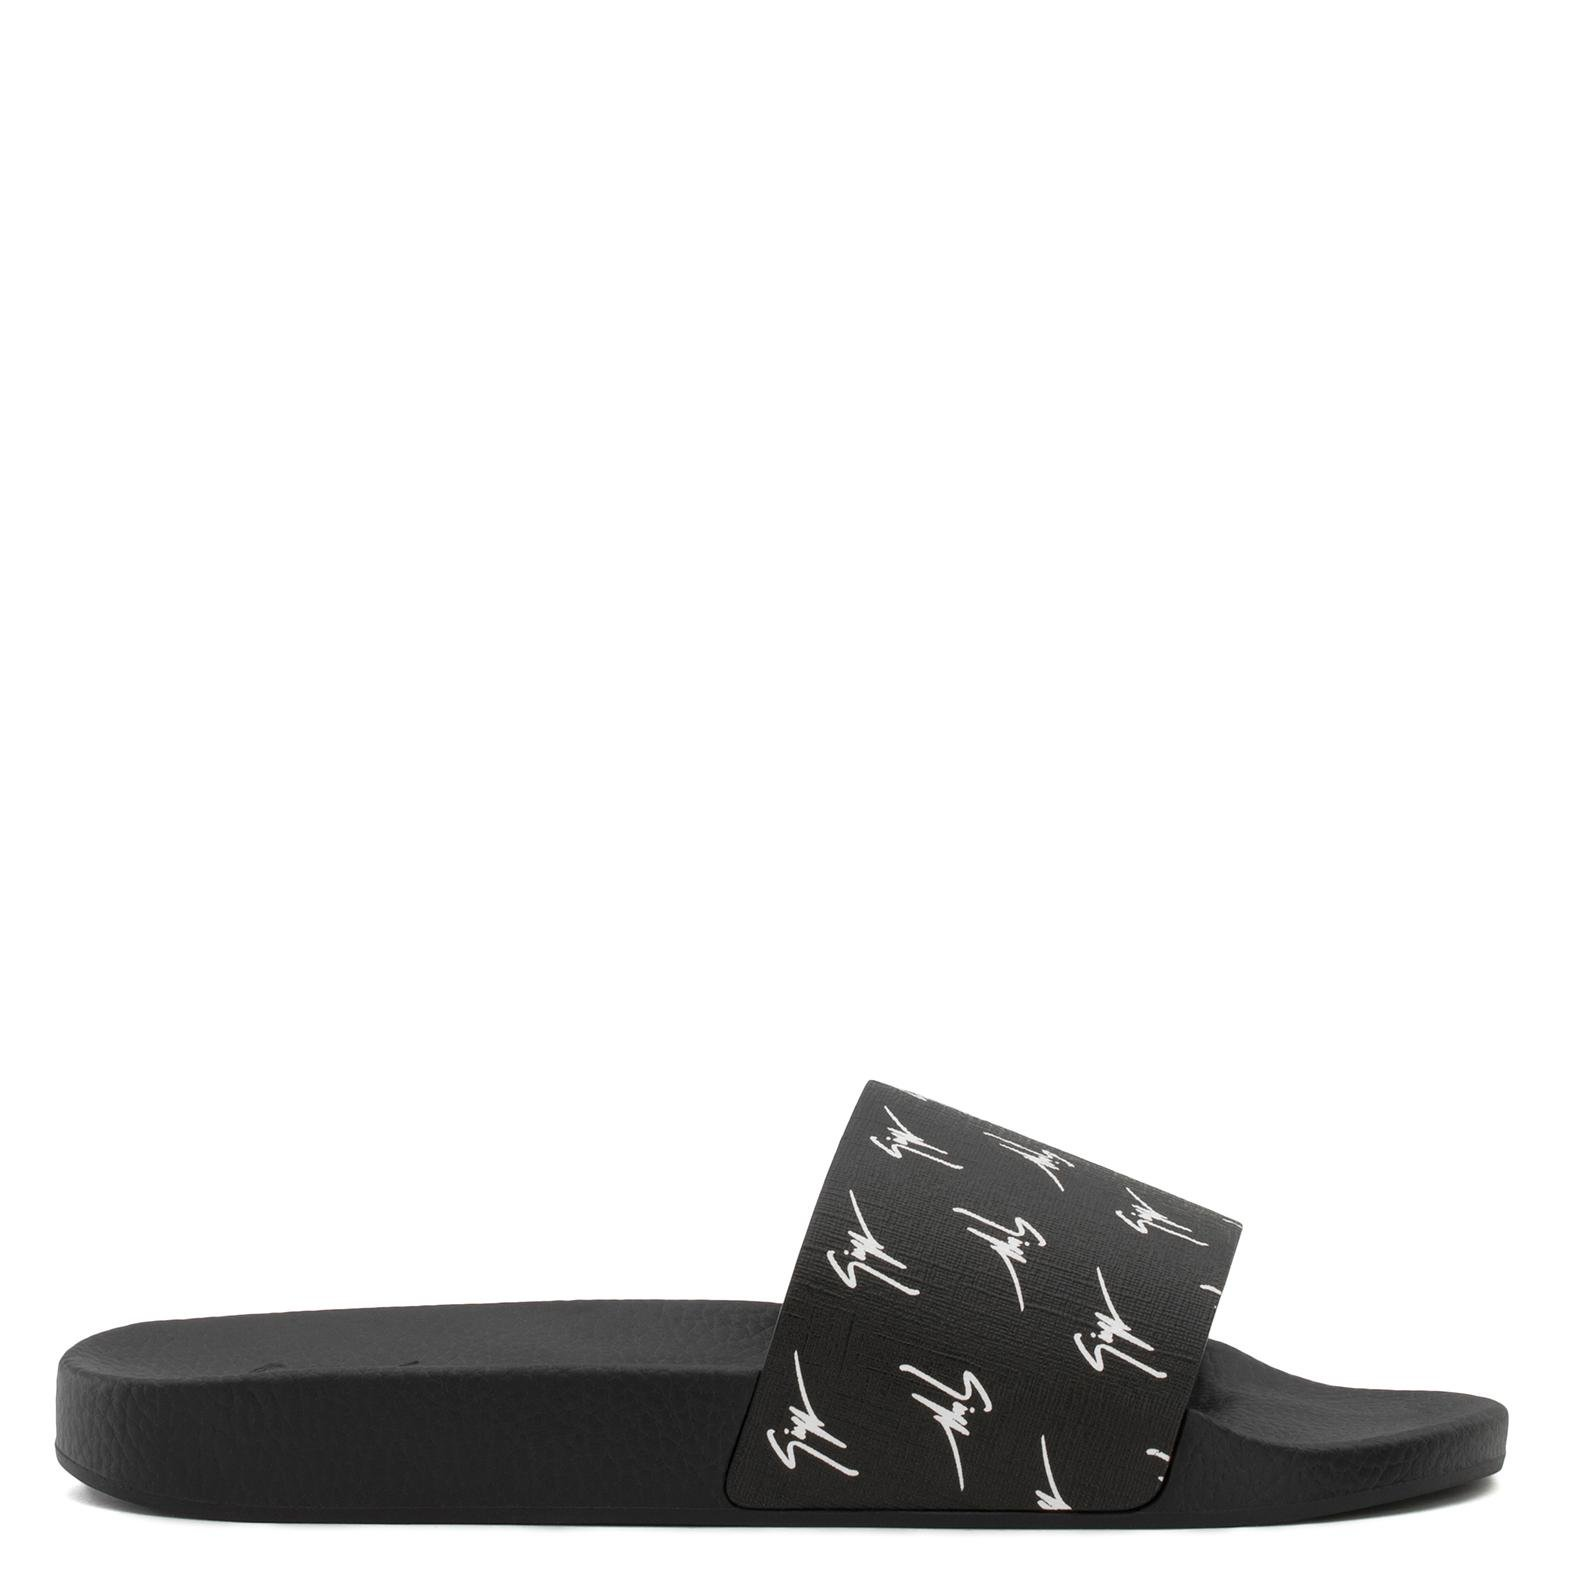 Giuseppe Zanotti Calfskin leather sandal with white logo motif BRETT SIGNATURE Z5ceGWf